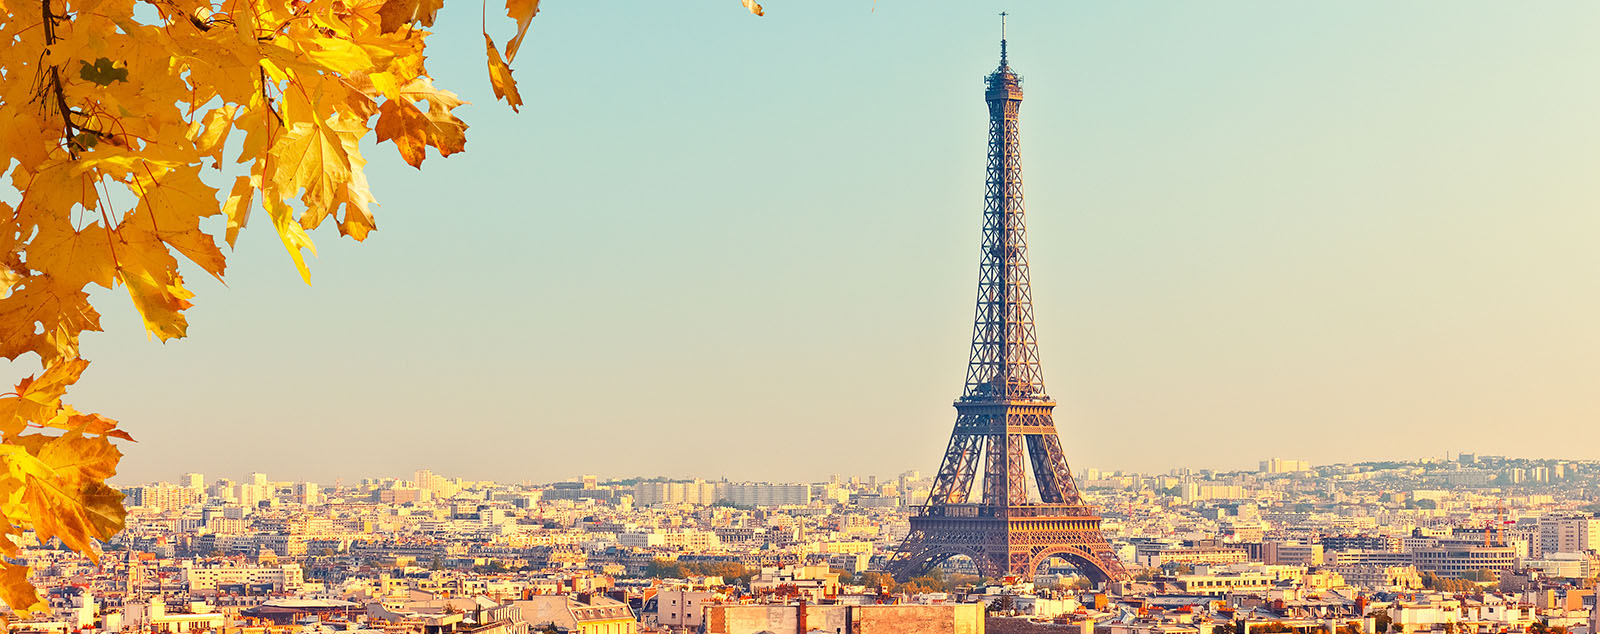 The Eiffel Tower looming over Paris